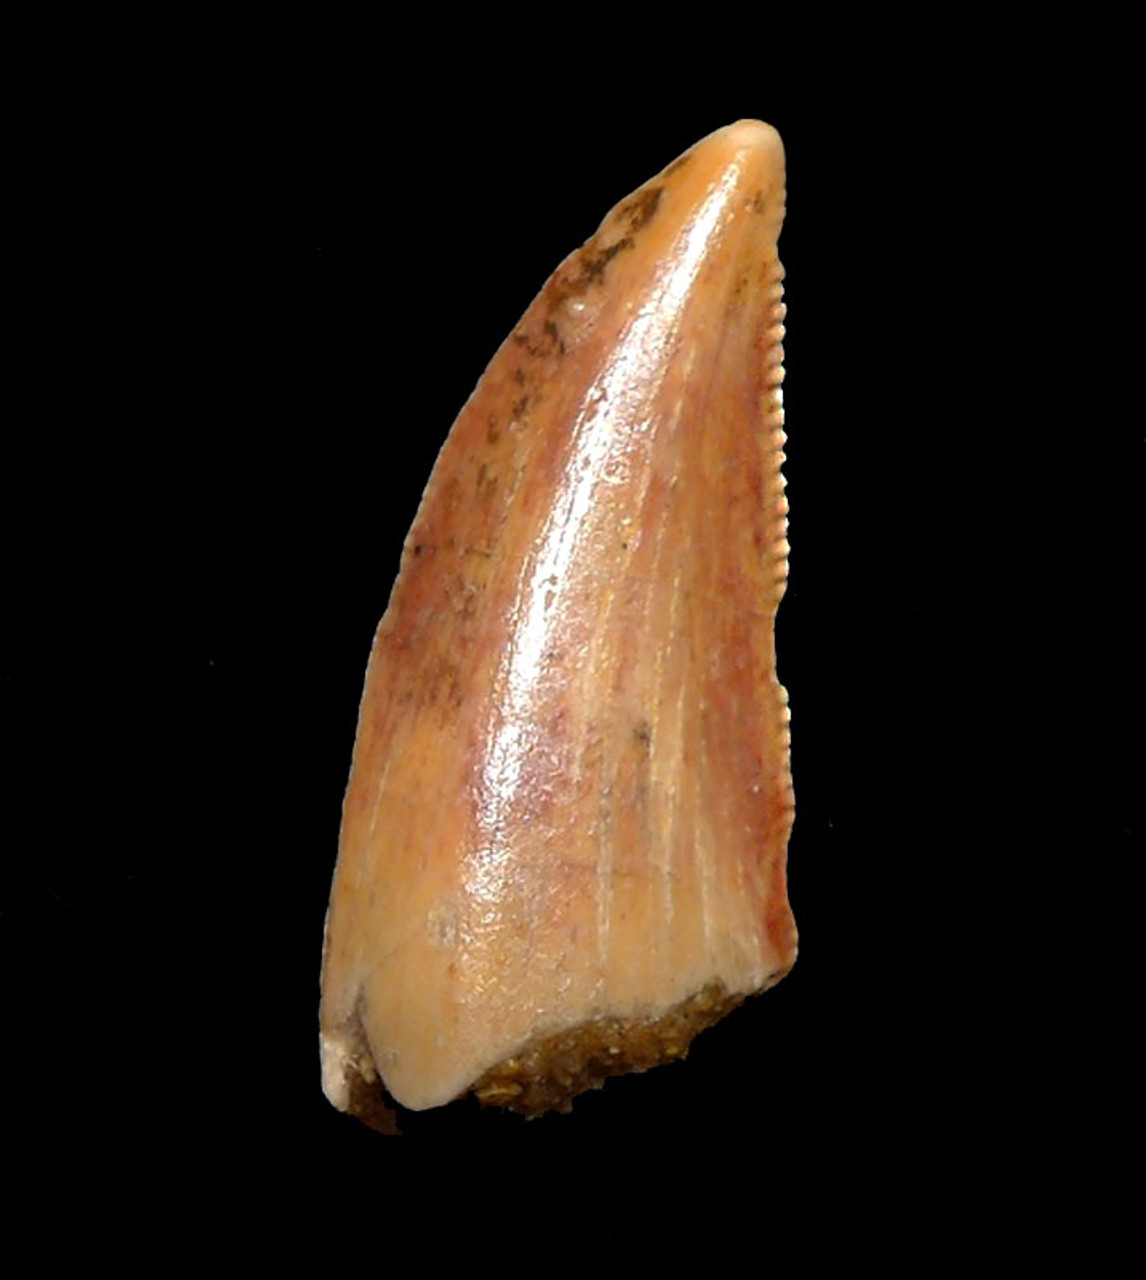 BEAUTIFUL GOLDEN FOSSIL RAPTOR DINOSAUR TOOTH FROM A LARGE DROMAEOSAUR  *DT6-336